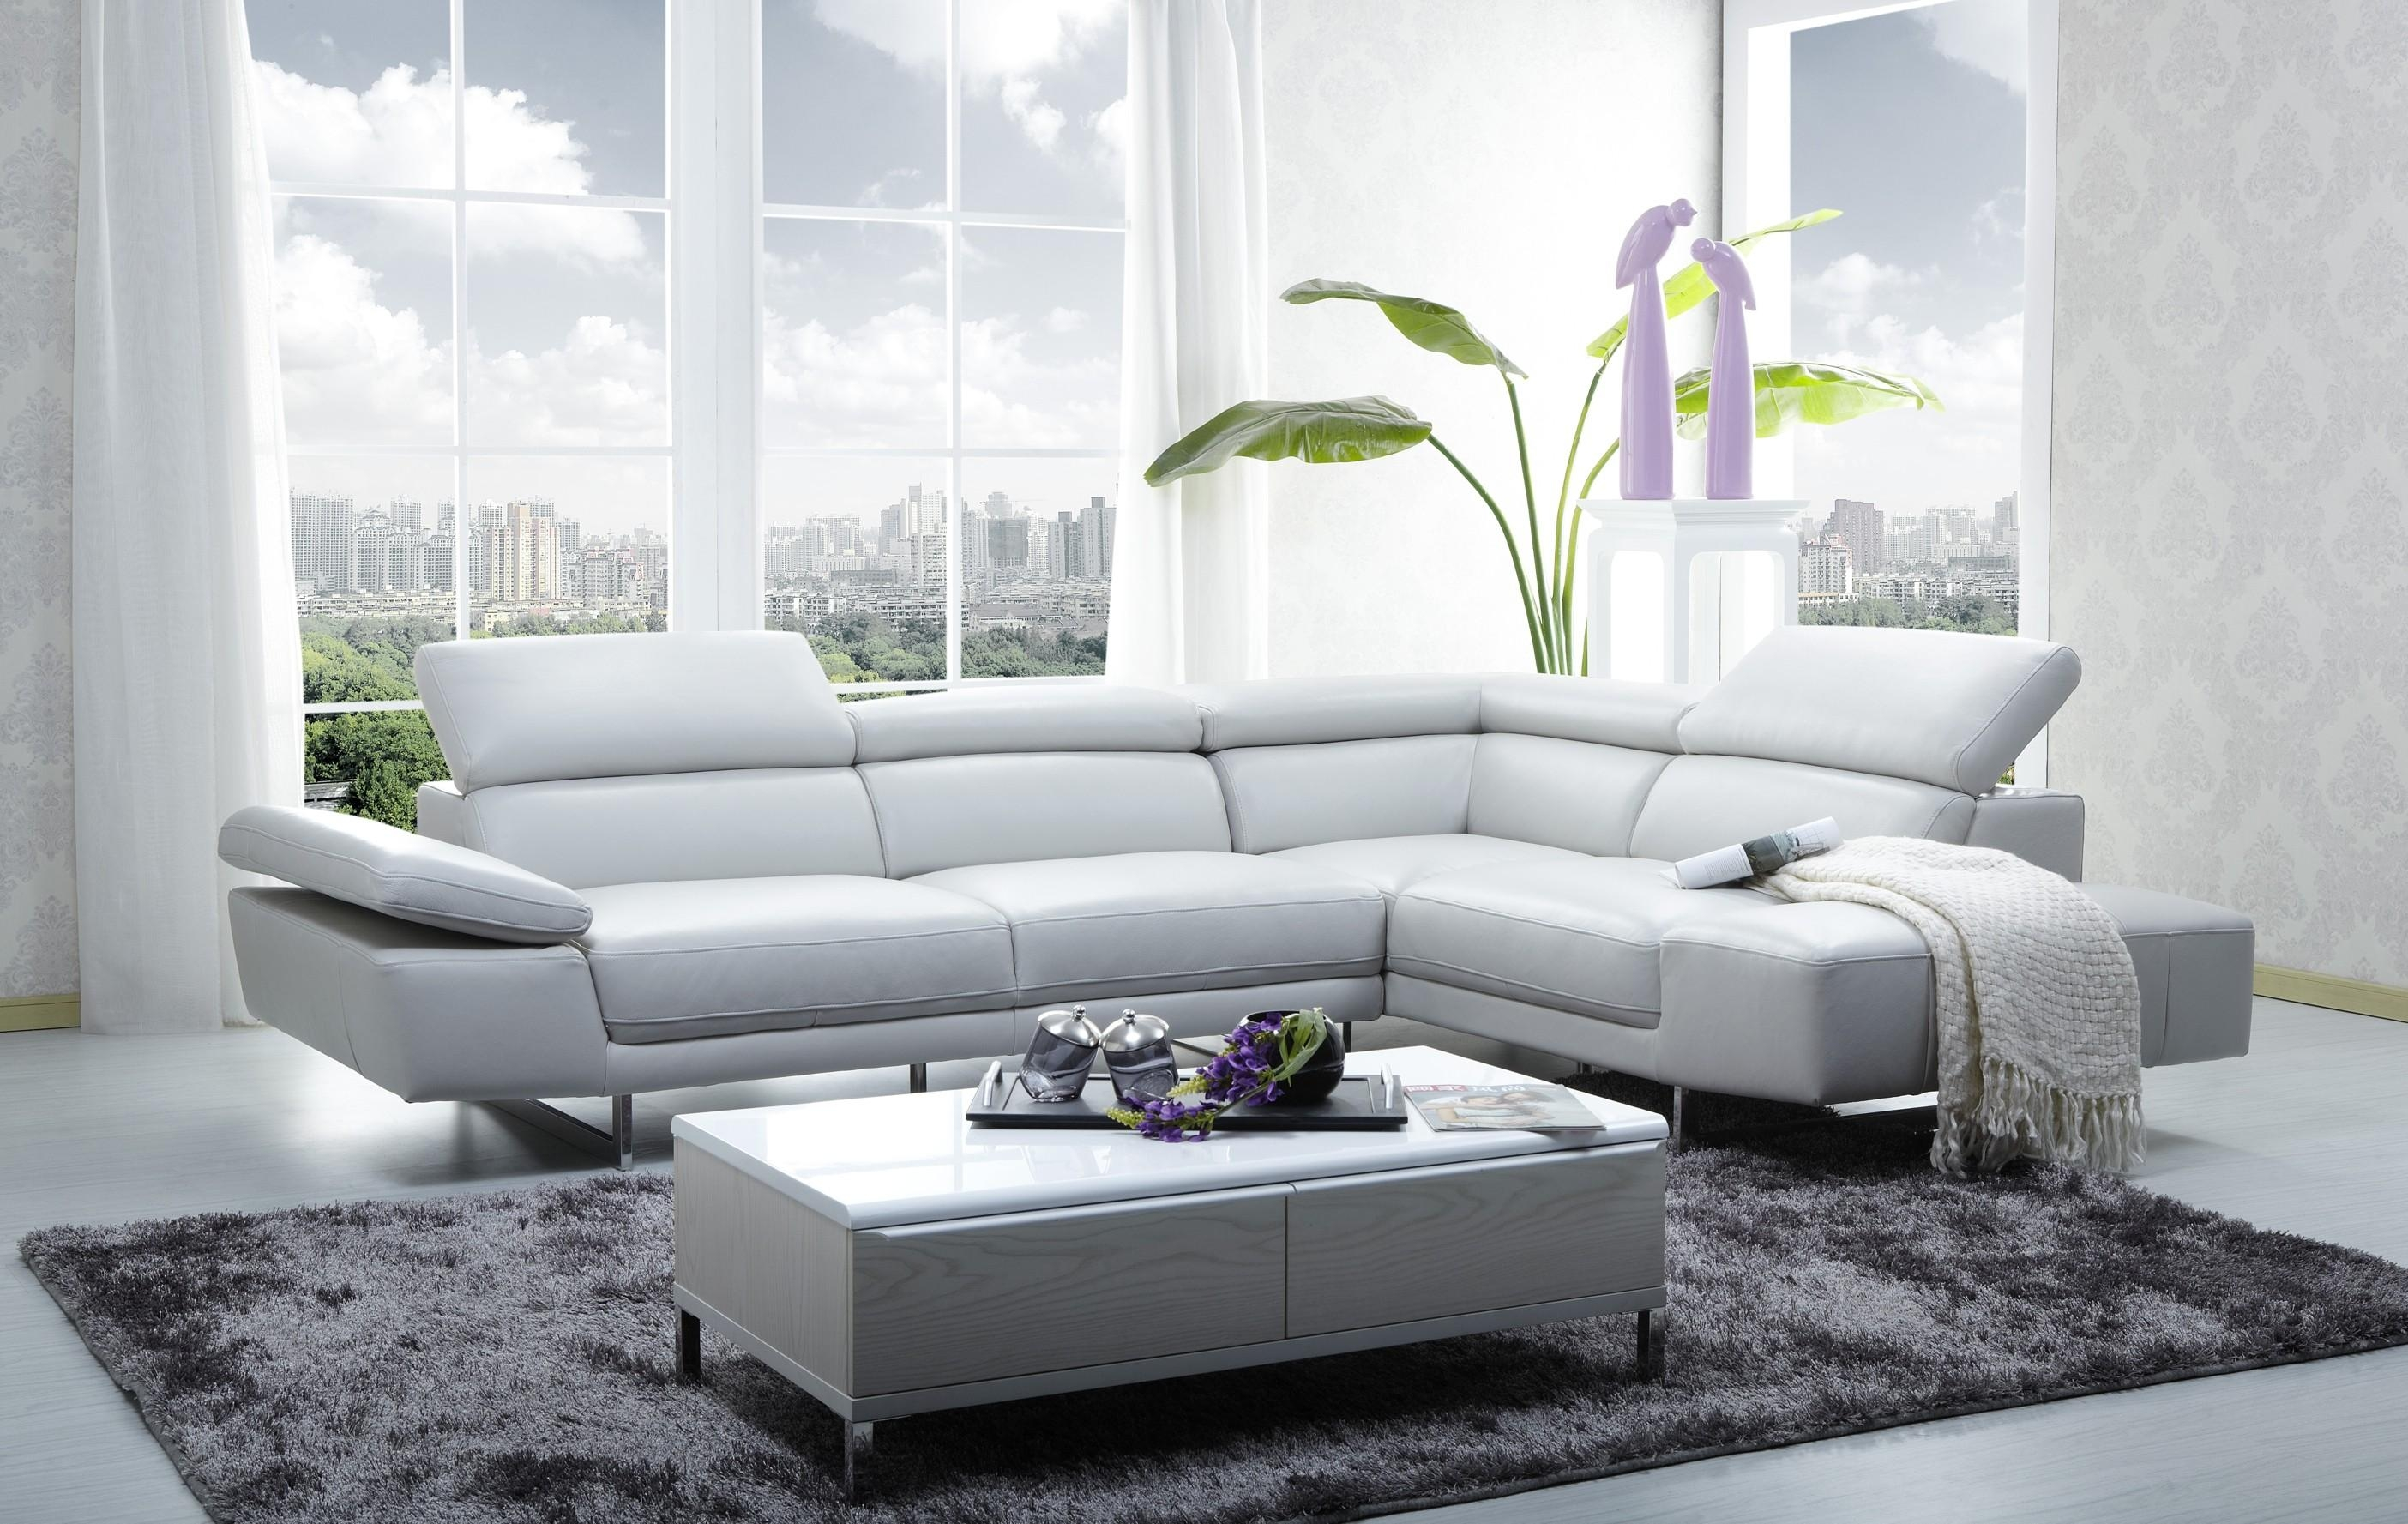 Small Apartment Design Interior With White Sectional Sofa Beds Within White Sectional Sofa For Sale (Image 13 of 21)